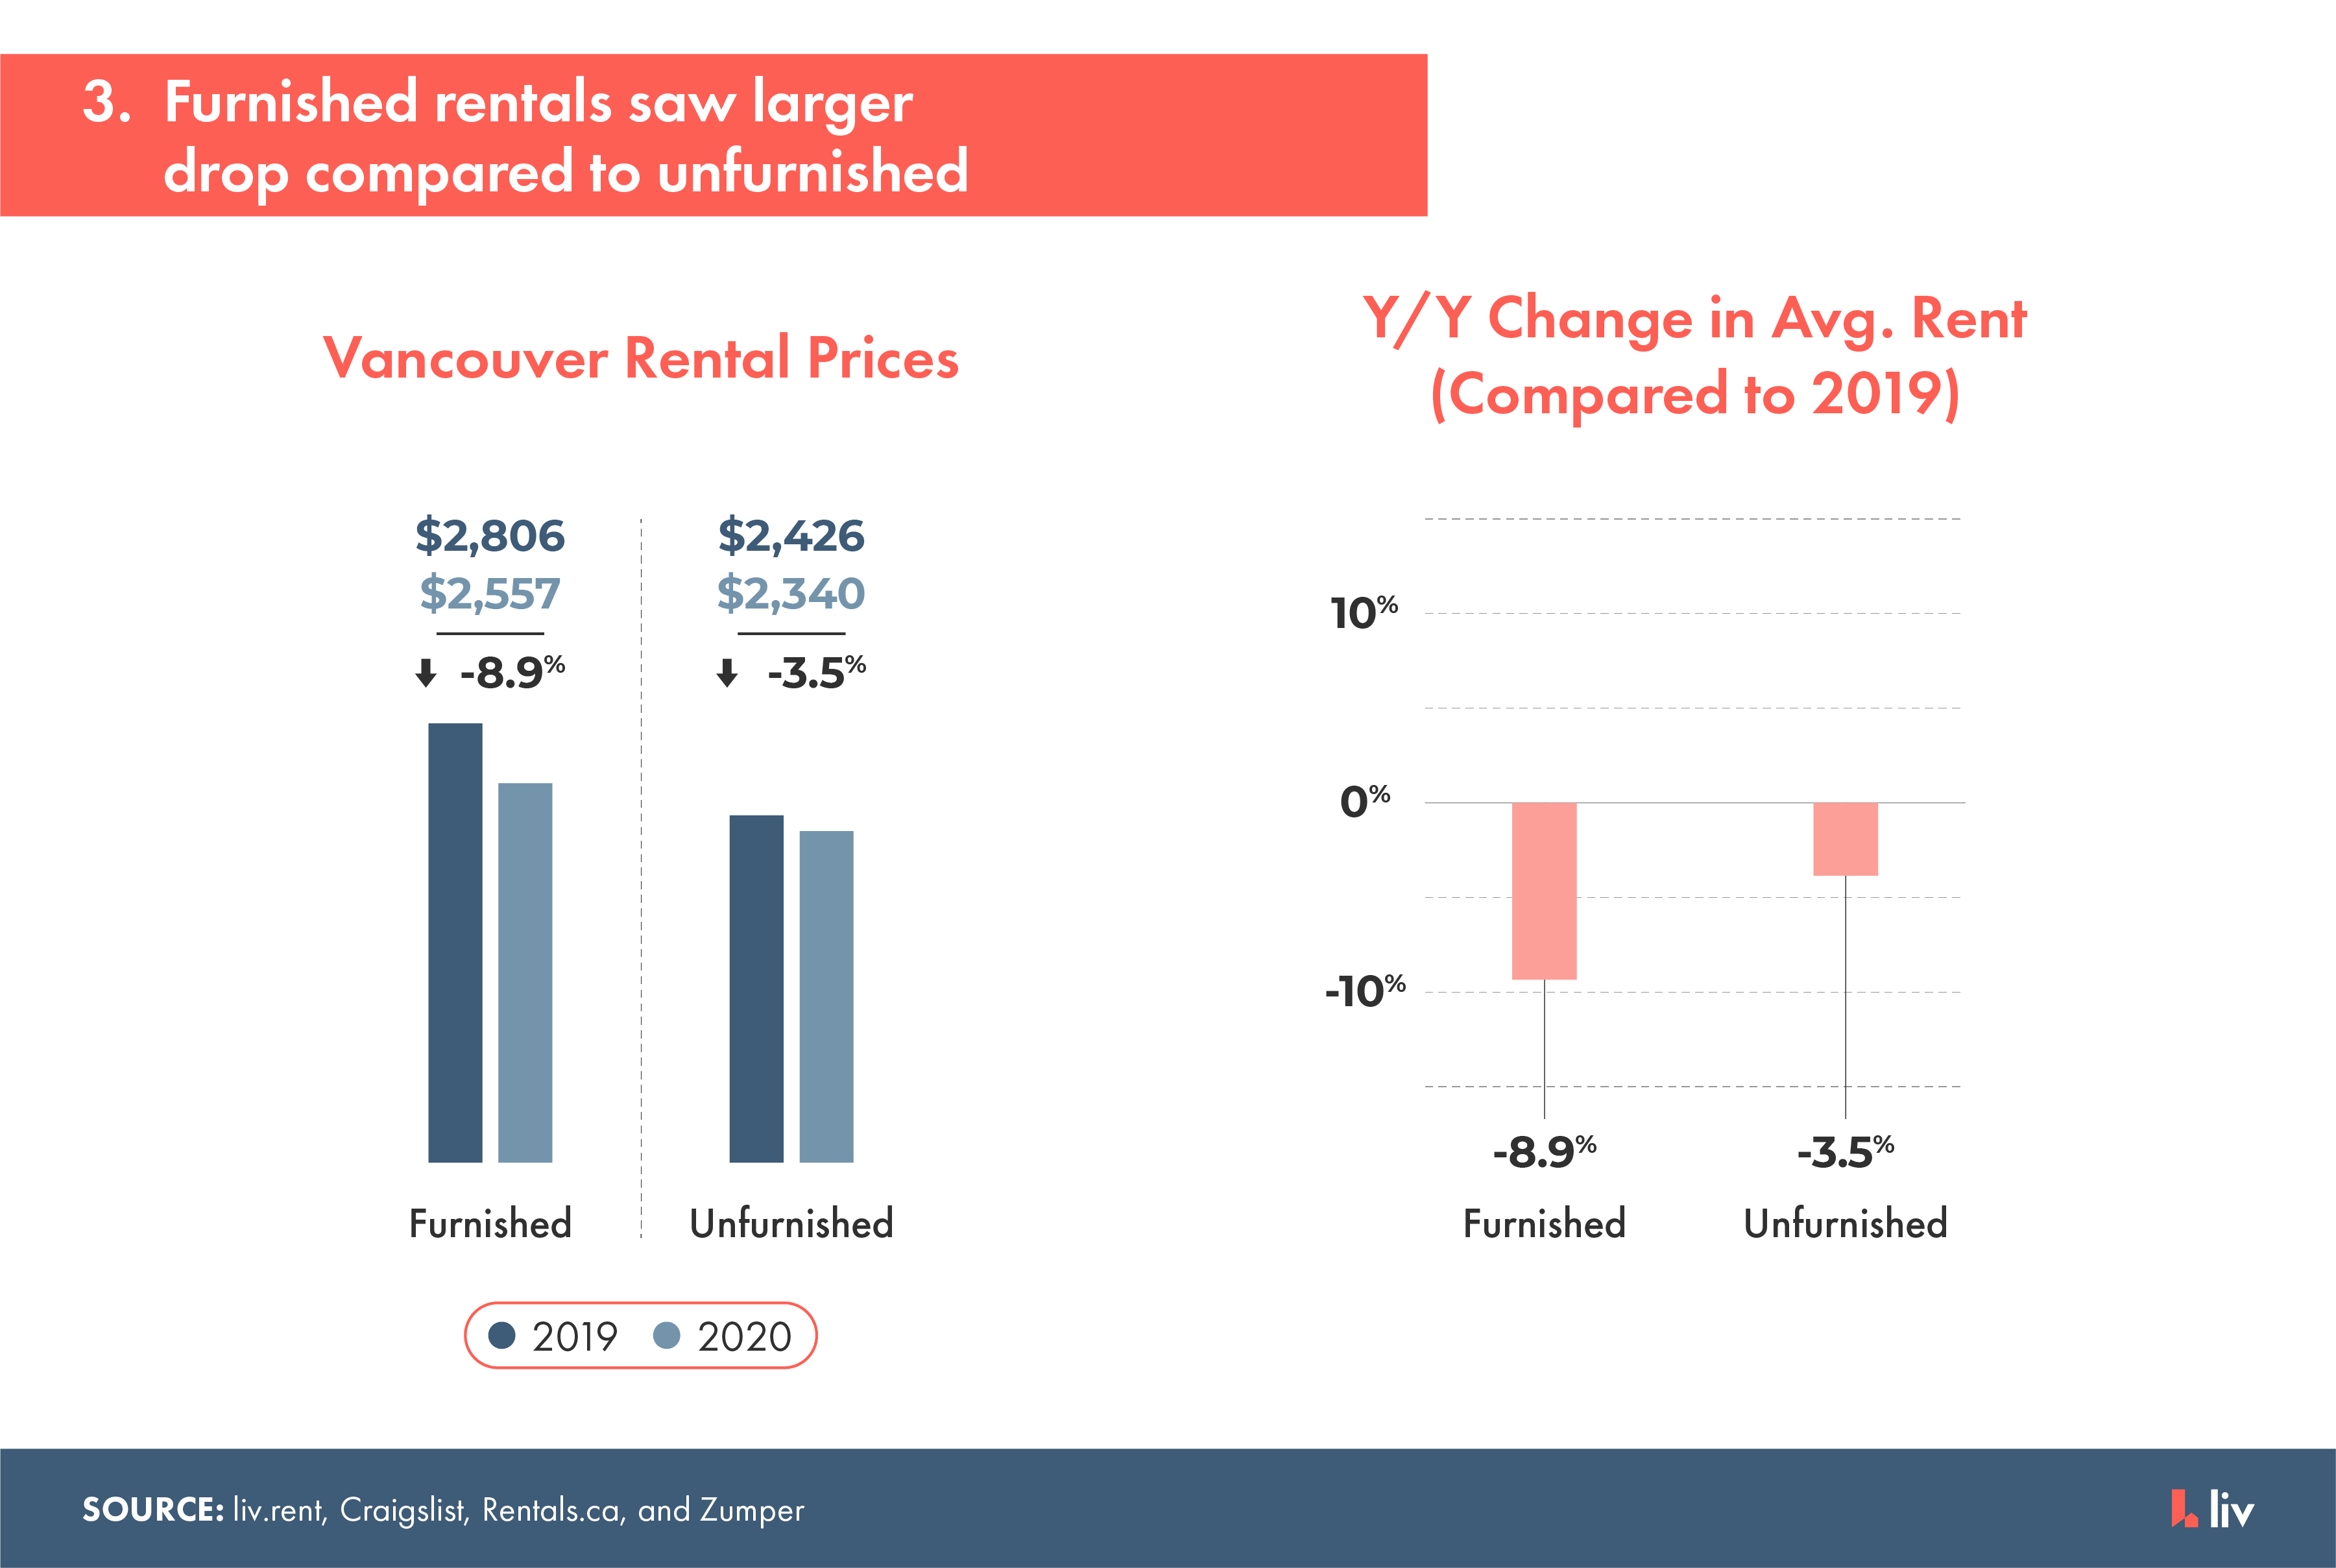 furnished rentals in vancouver saw a larger drop compared to unfurnished rentals during 2020